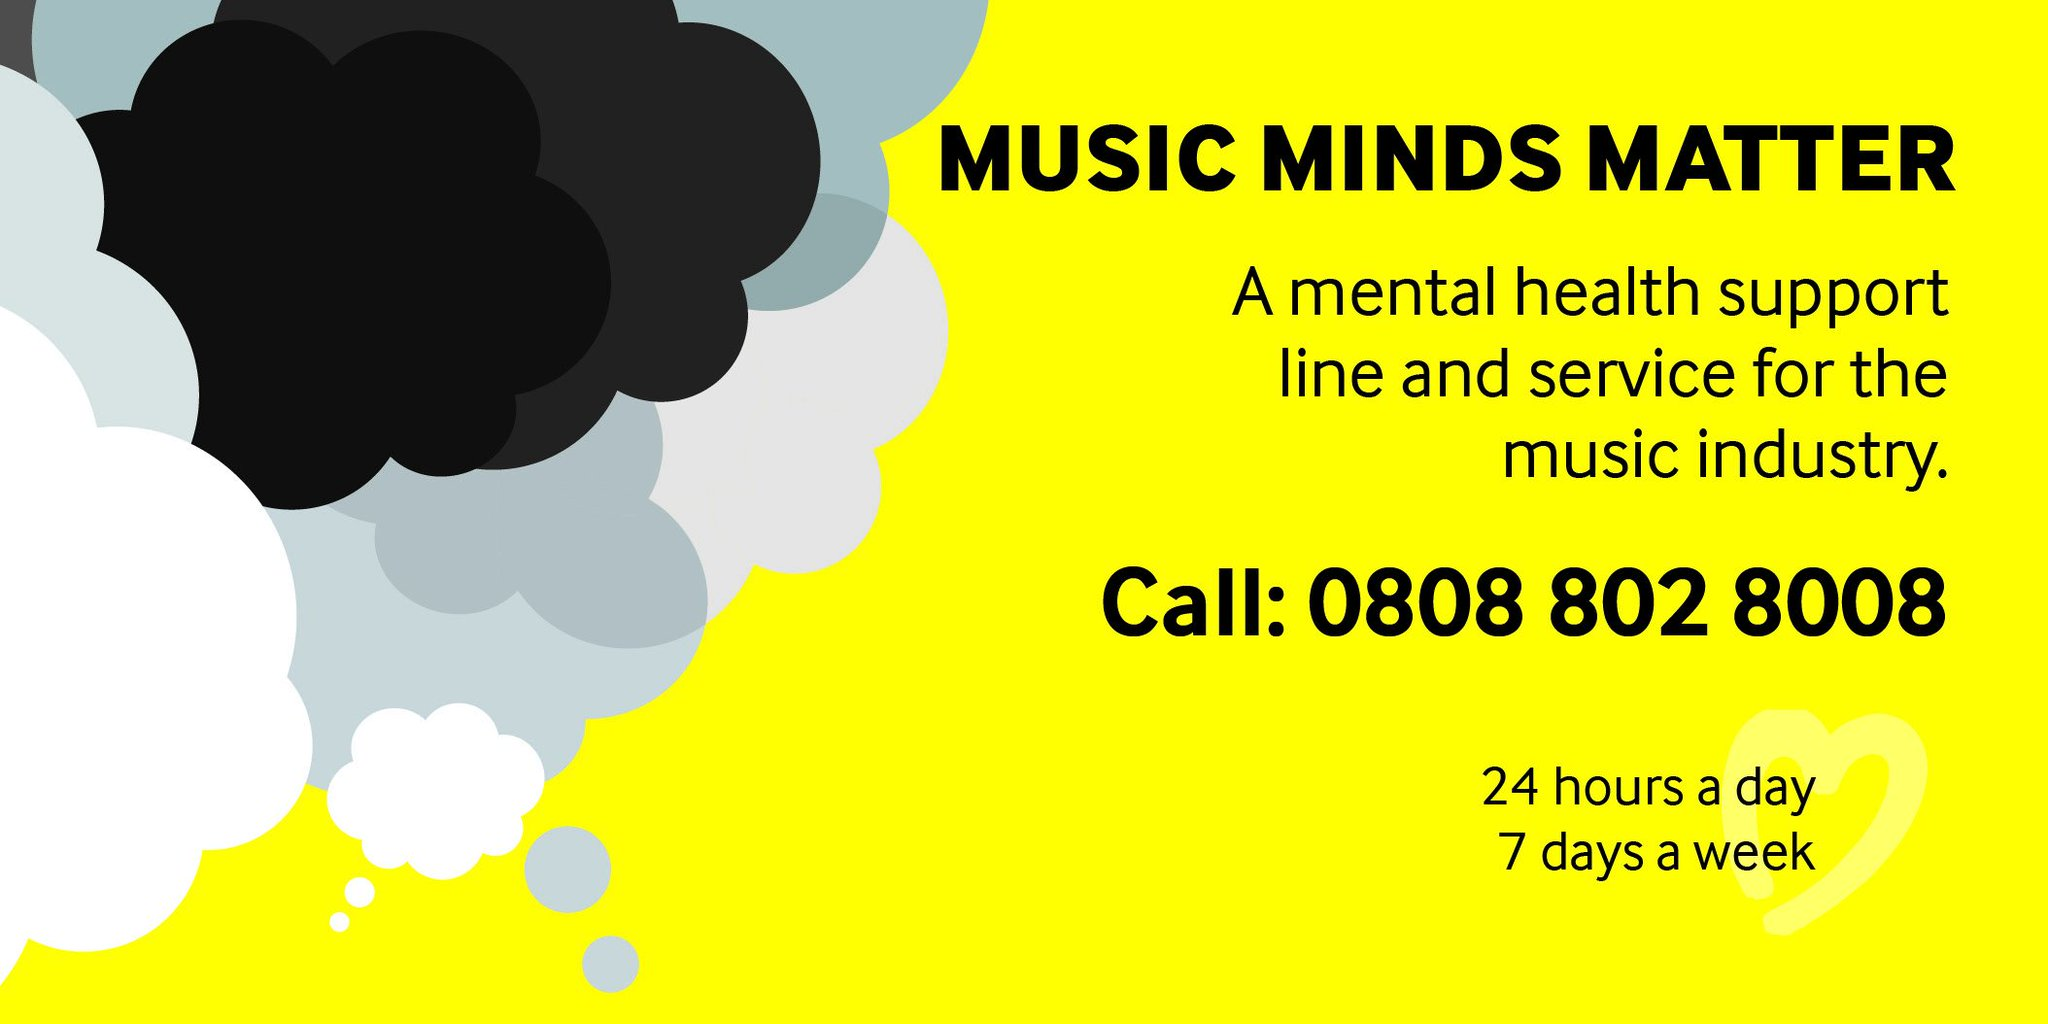 If you need someone to talk to, our #MusicMindsMatter 24/7 mental health support line and service offers FREE emotional support, advice and access to clinical pathways & professional therapeutic services.   Call 0808 802 8008 or email MMM@helpmusicians.org.uk 💛 https://t.co/LbKDAojf3p